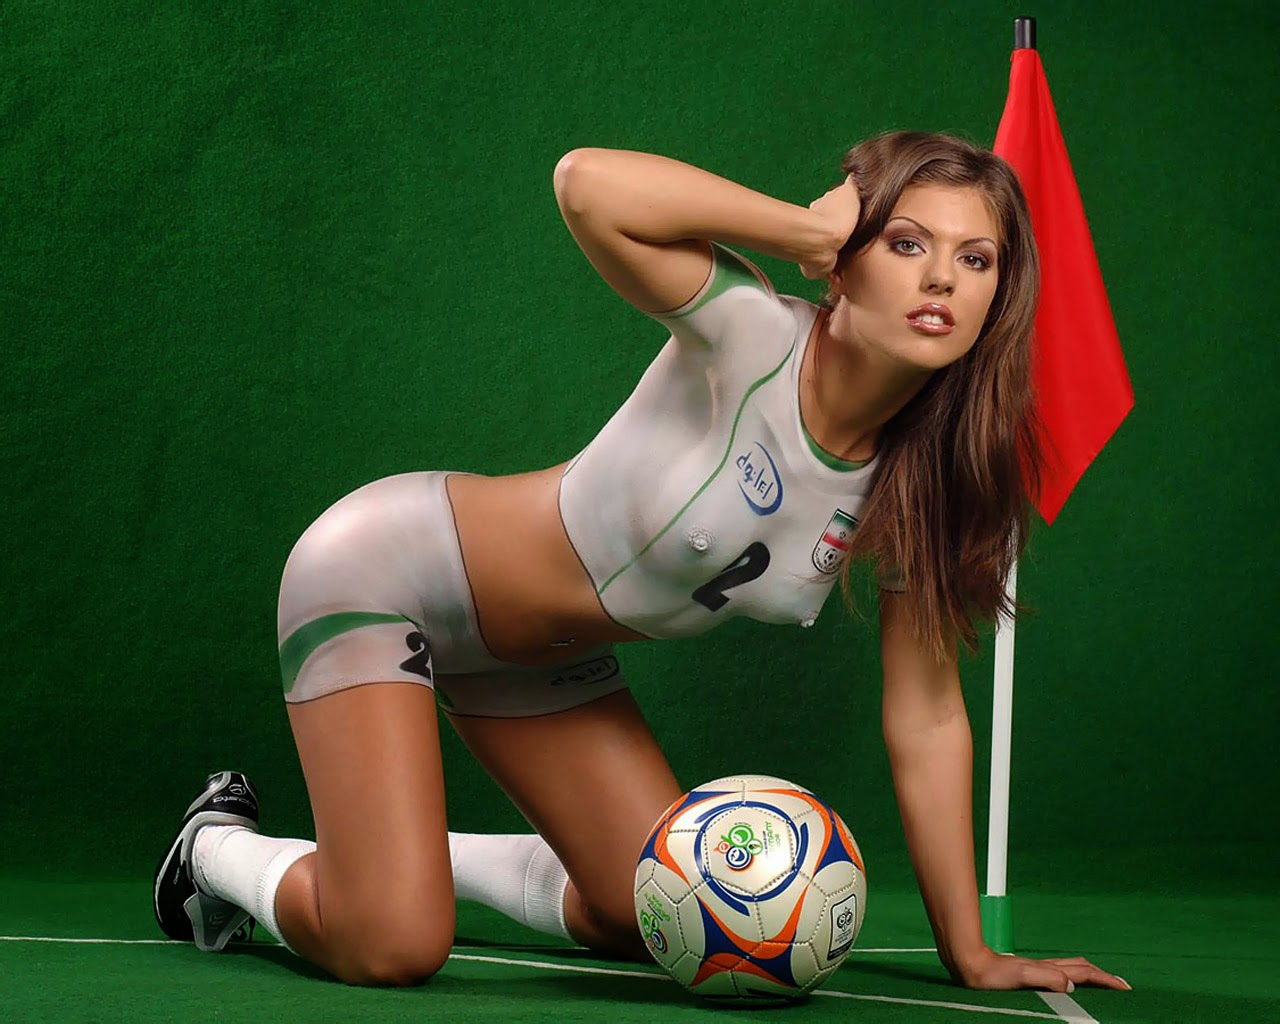 Sexy World Cup Soccer Body Painting - Sex Porn Images